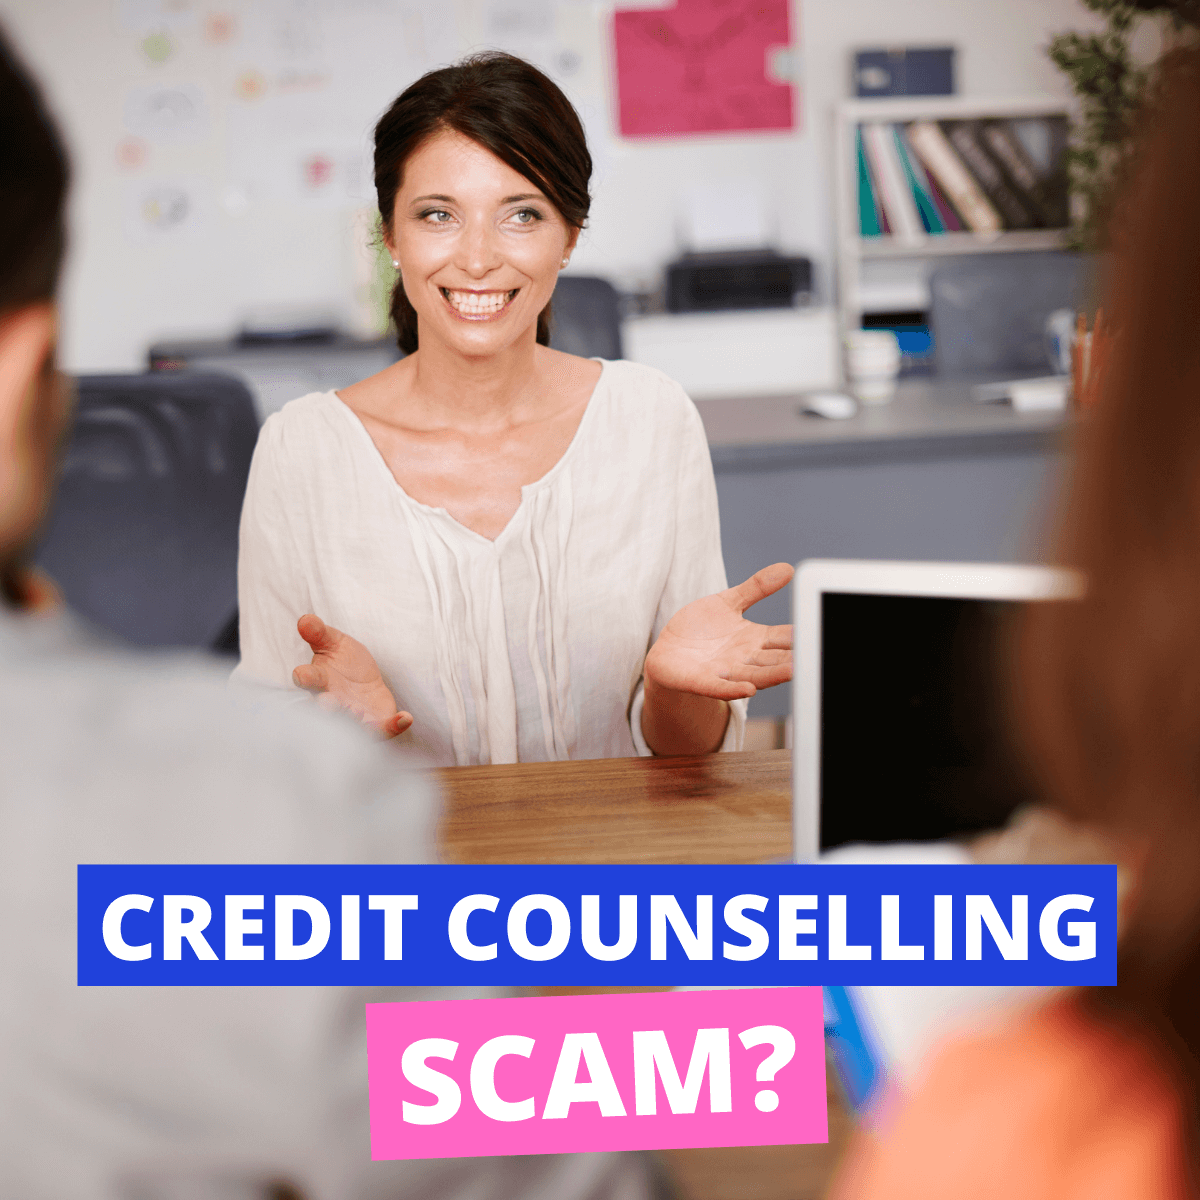 Is Credit Counselling A Scam?